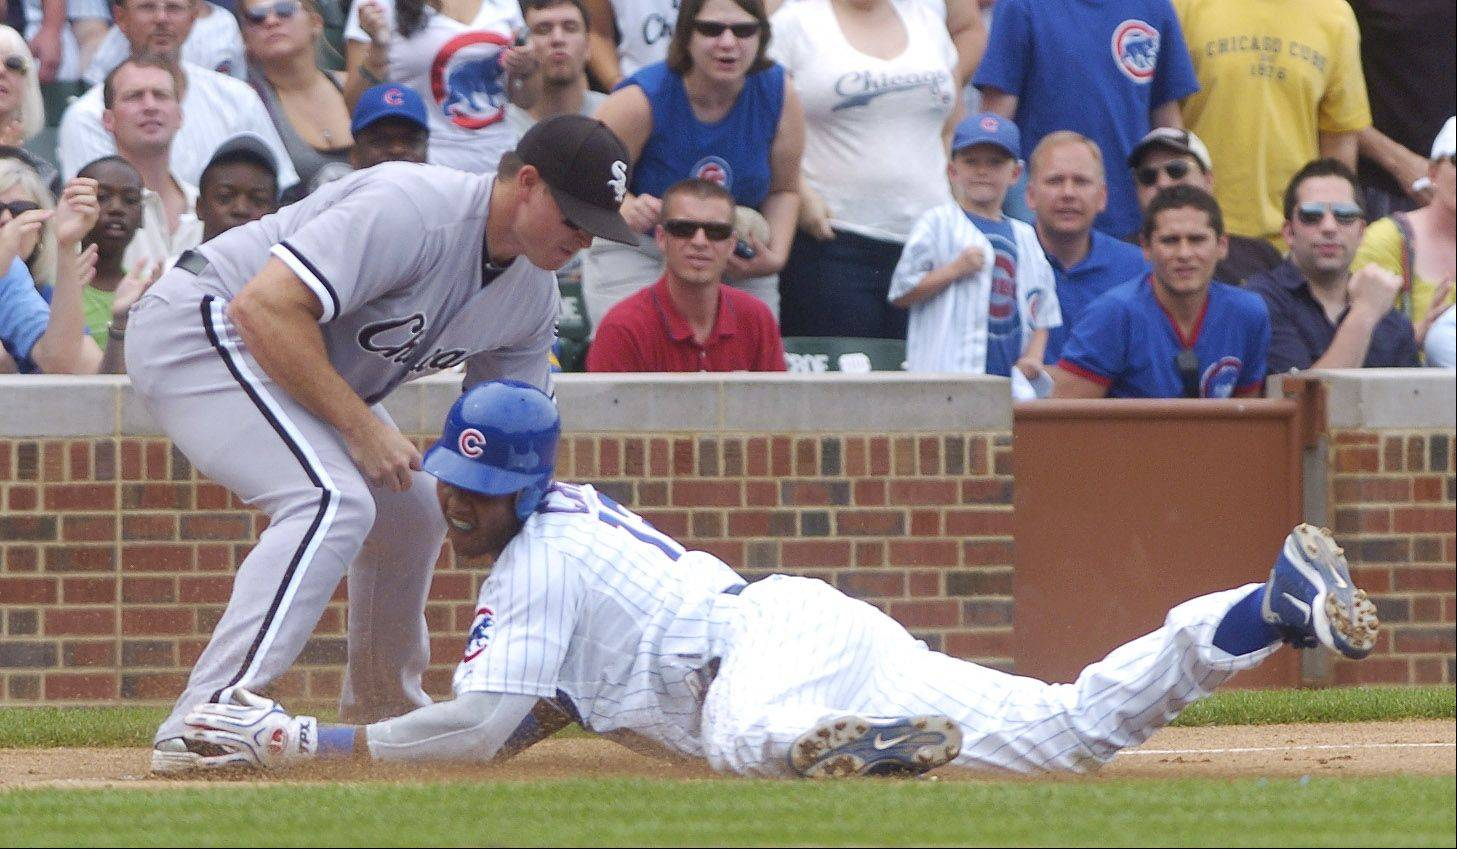 Starlin Castro of the Cubs is called safe on a close play at third for a fourth-inning triple as White Sox third baseman Mark Teahen applies the tag during Sunday's game.